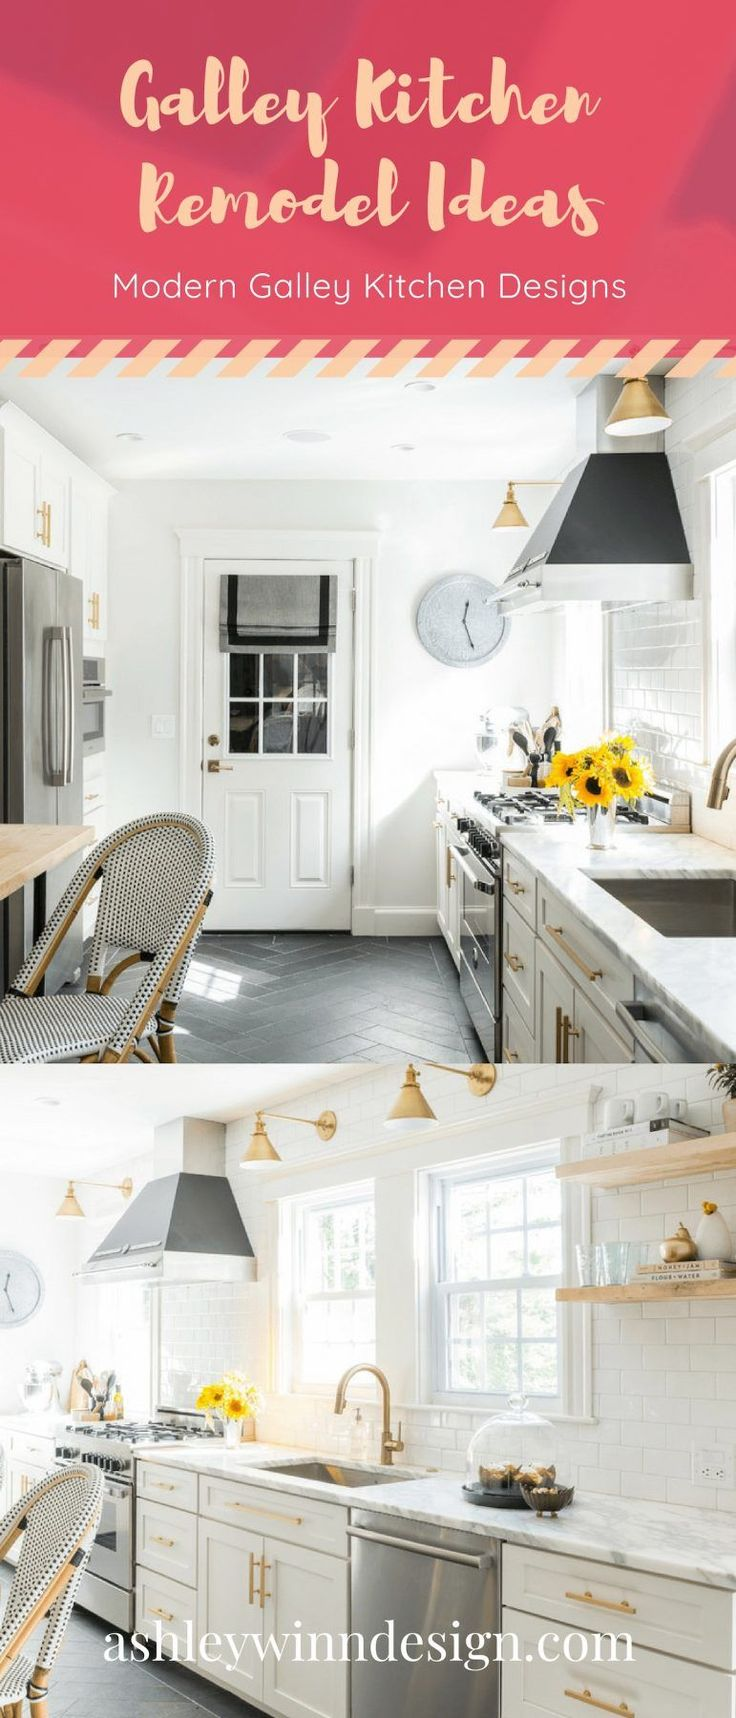 29 AWESOME GALLEY KITCHEN REMODEL IDEAS A GUIDE TO MAKEOVER